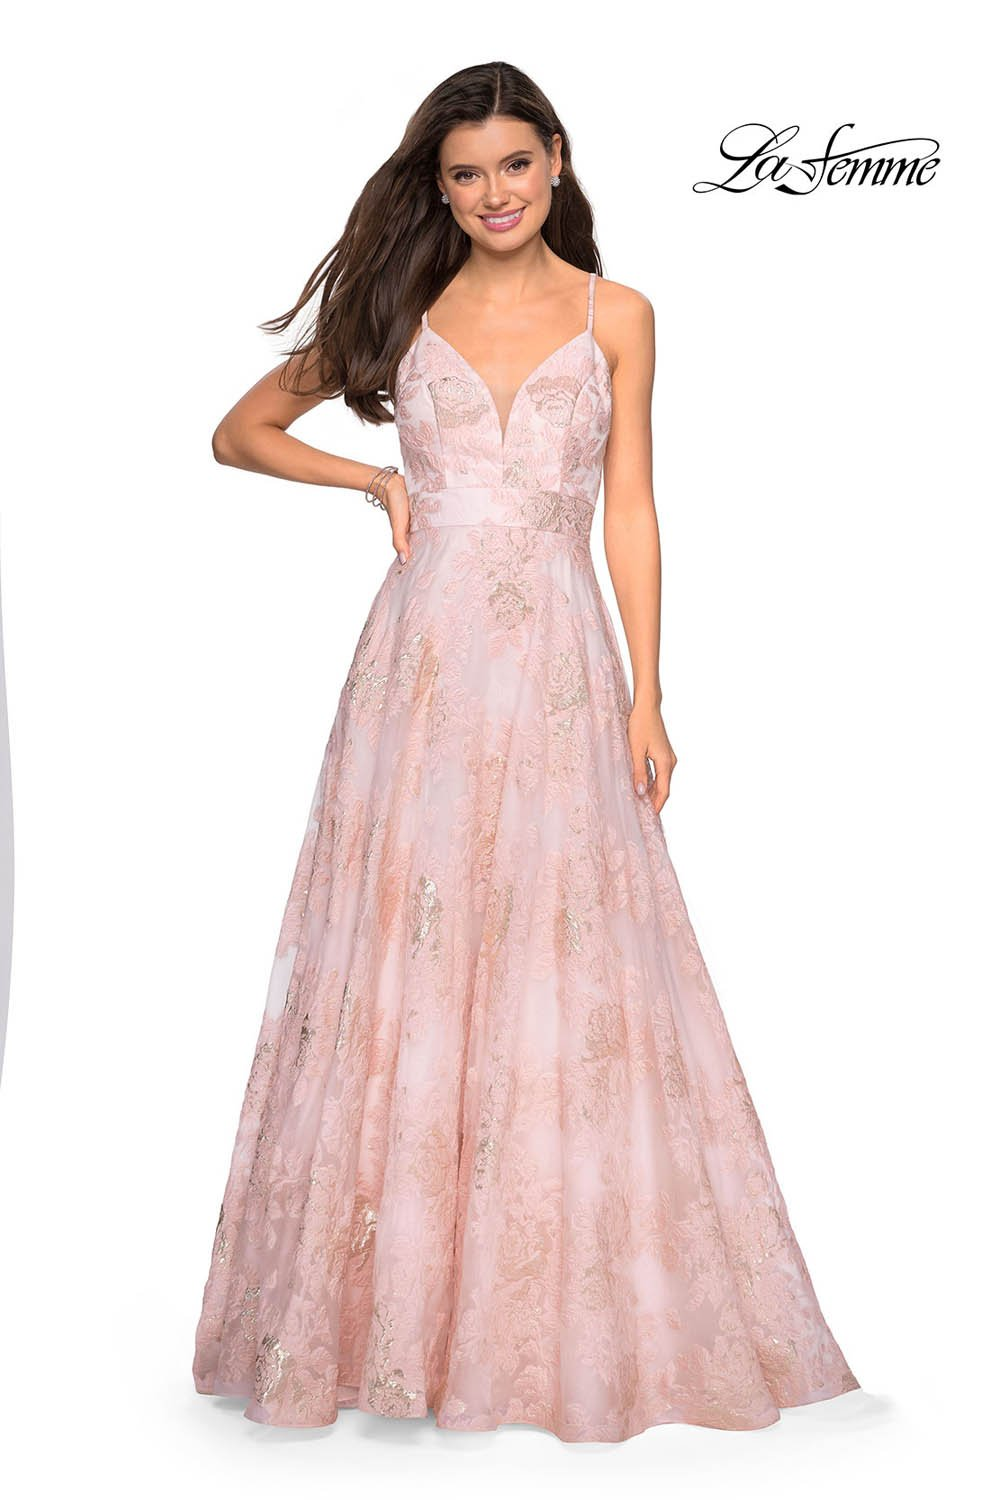 Gigi by La Femme 27549 prom dress images.  Gigi by La Femme 27549 is available in these colors: Pink Mulighti, Silver.